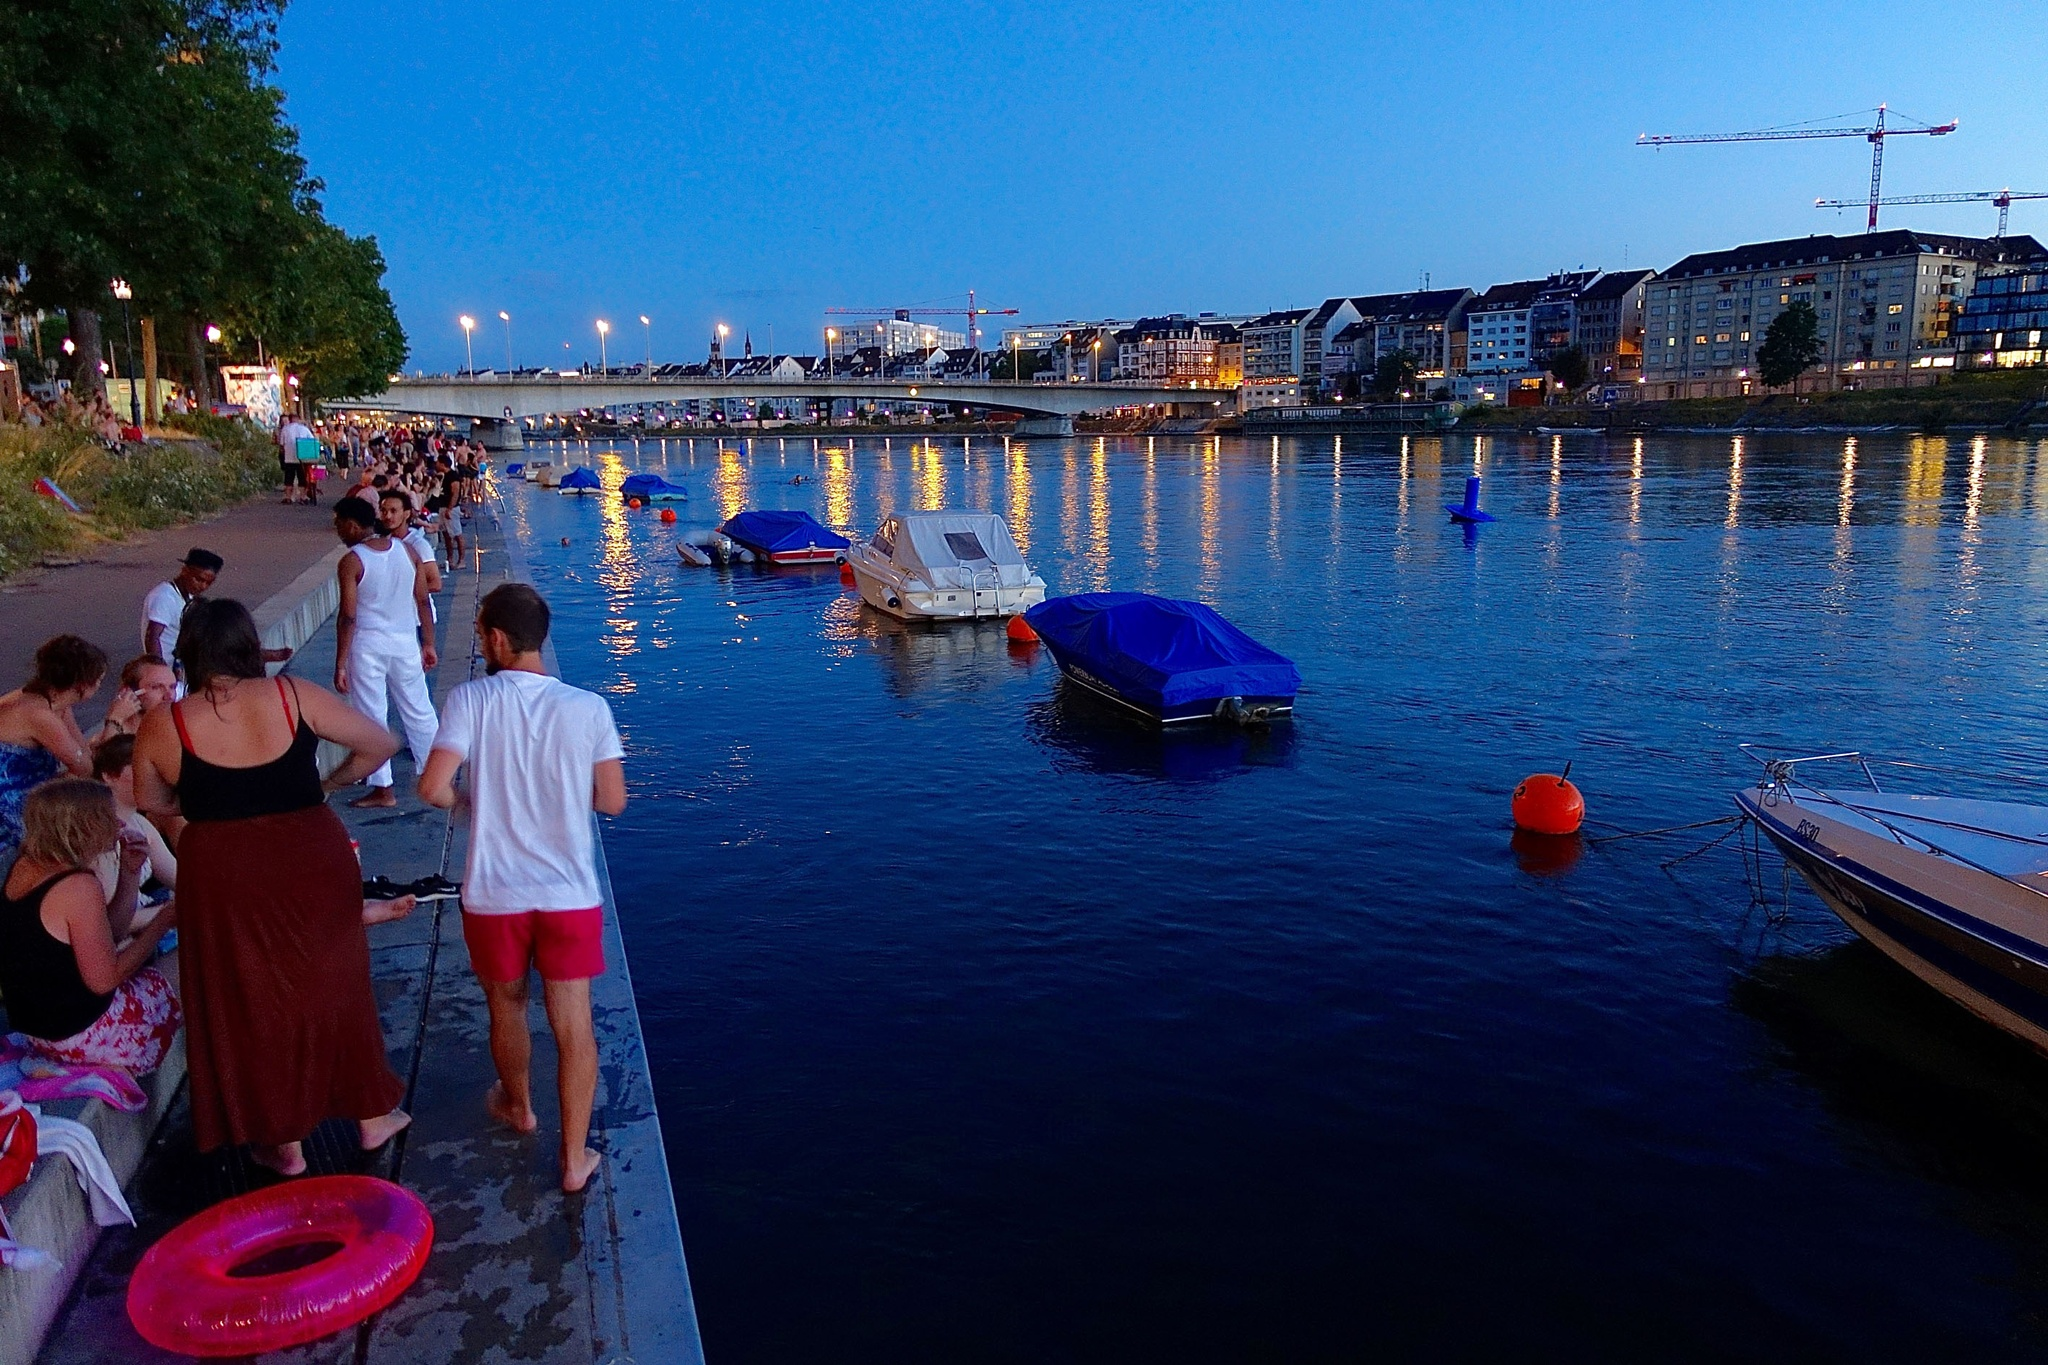 A summer evening at the Rhine in Basel Switzerland by Erwin Widmer